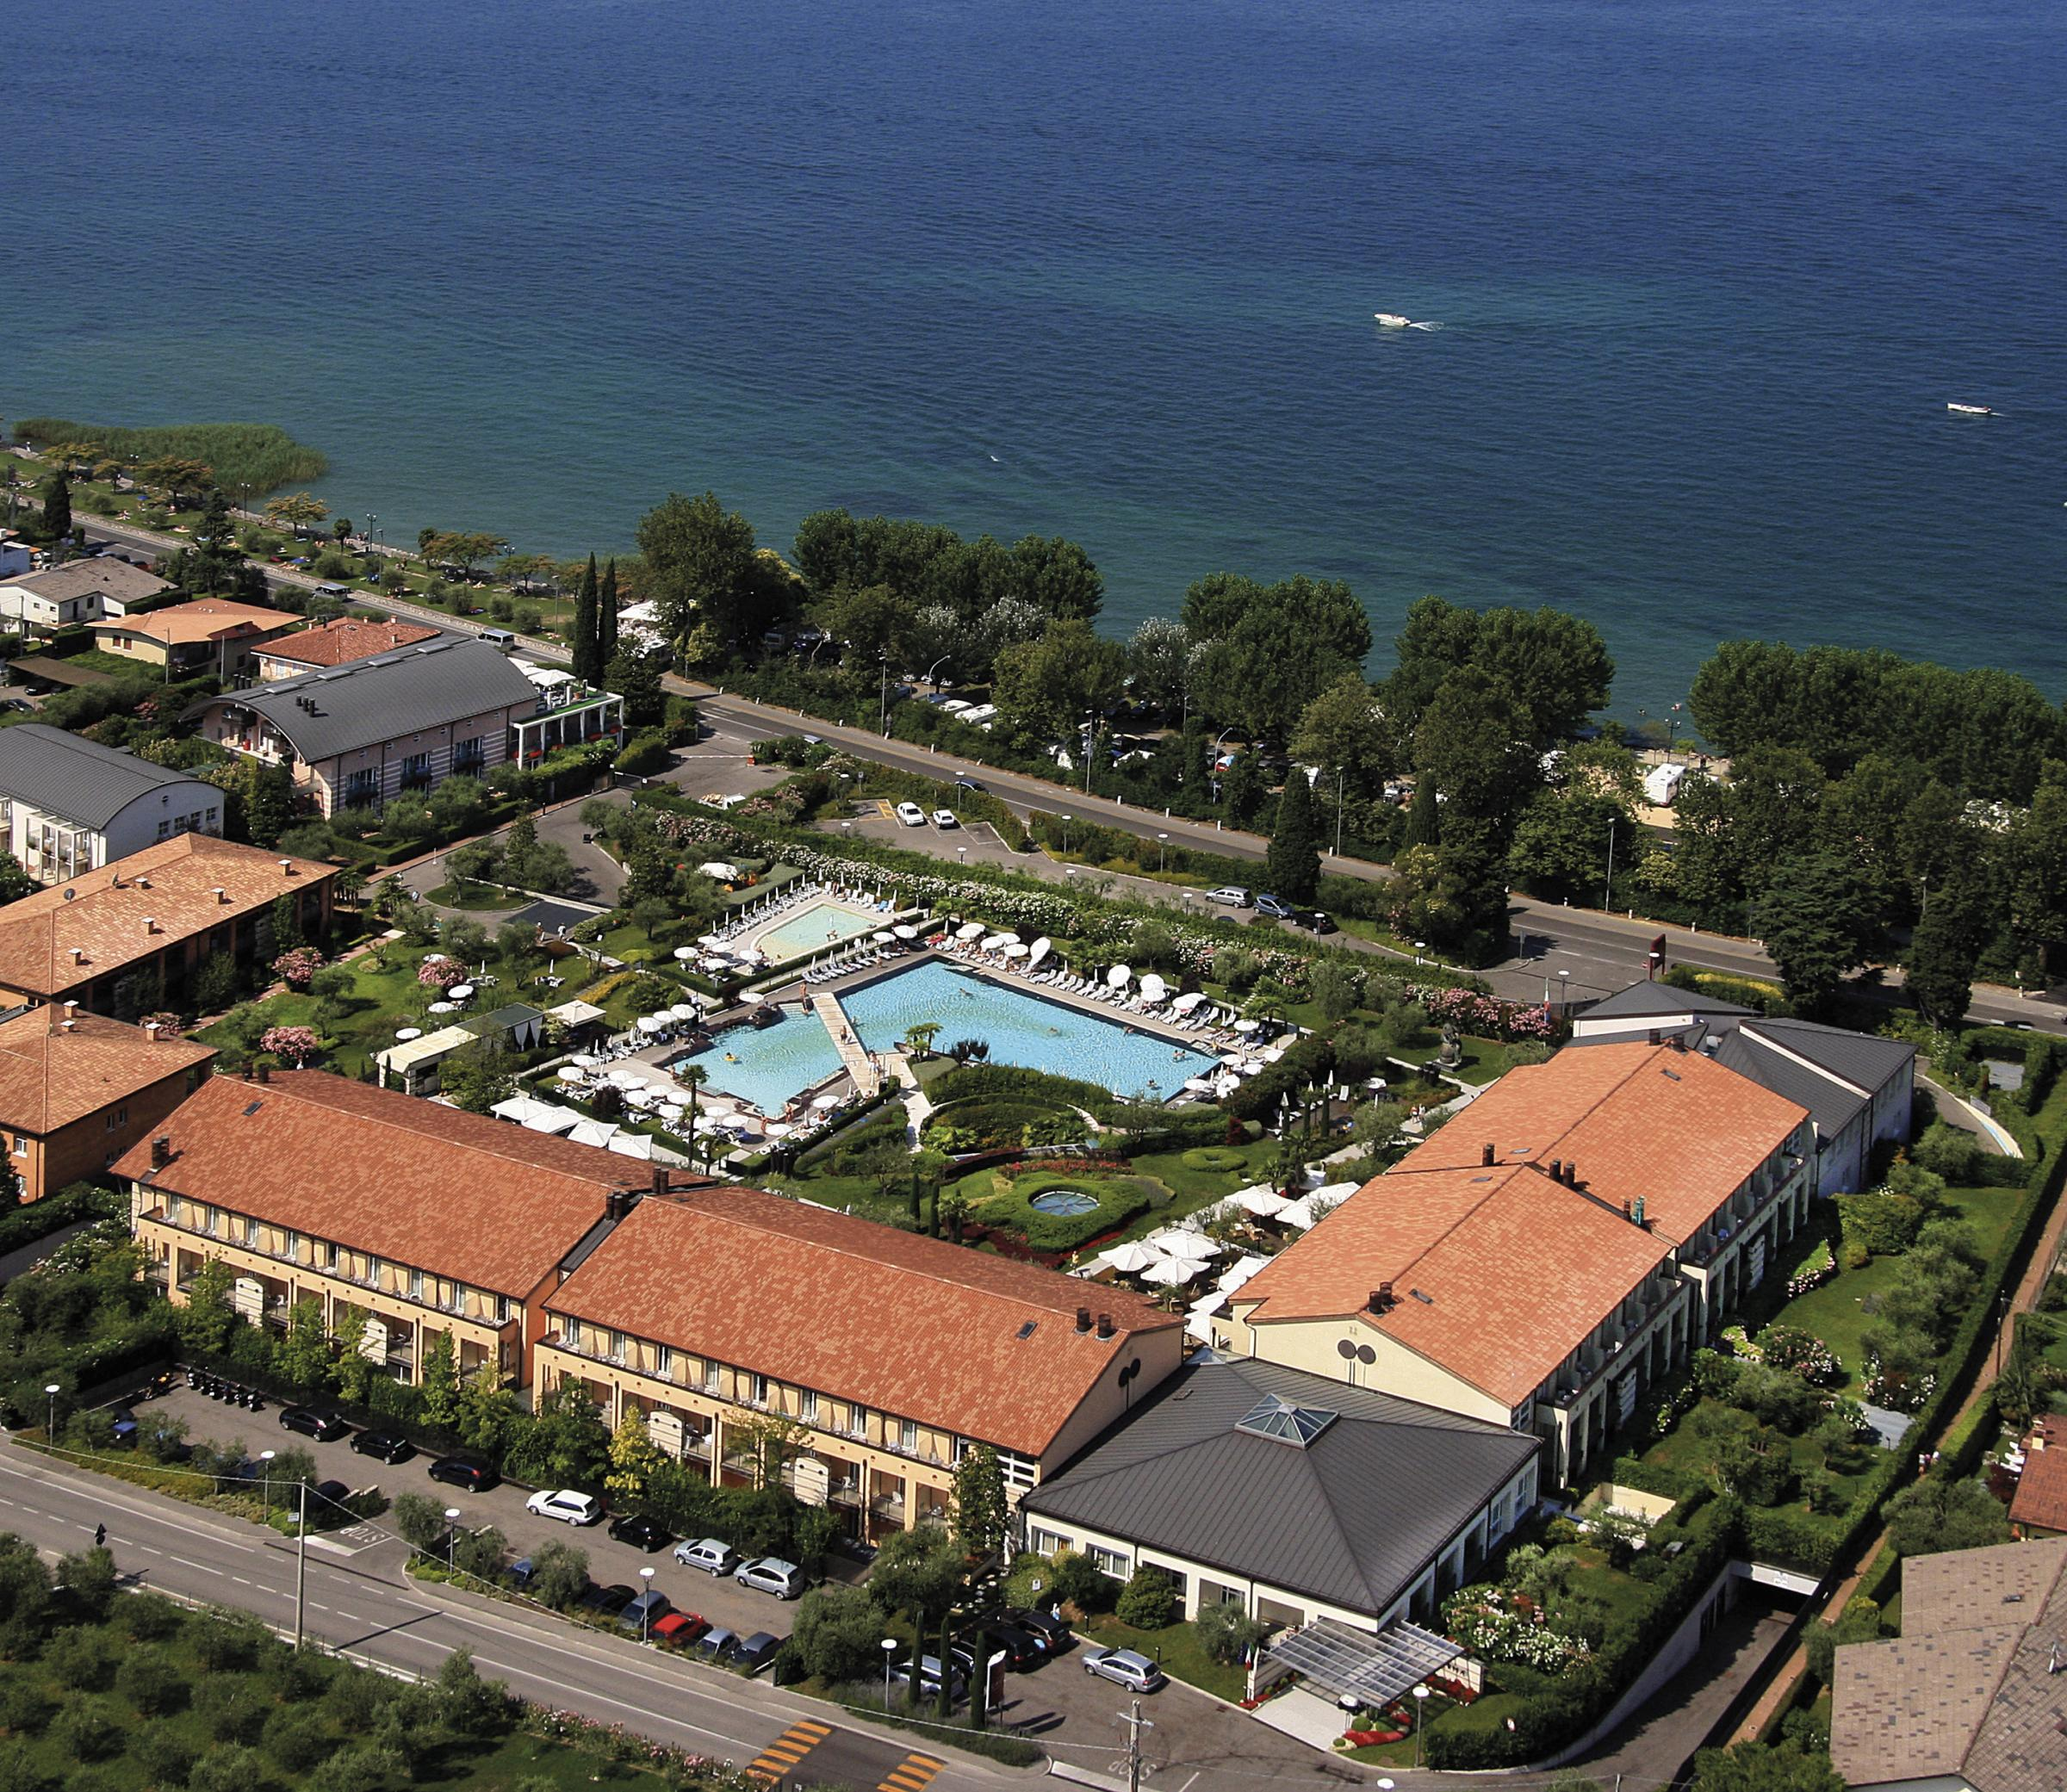 An aerial view of the Hotel Caesius Thermae & Spa Resort